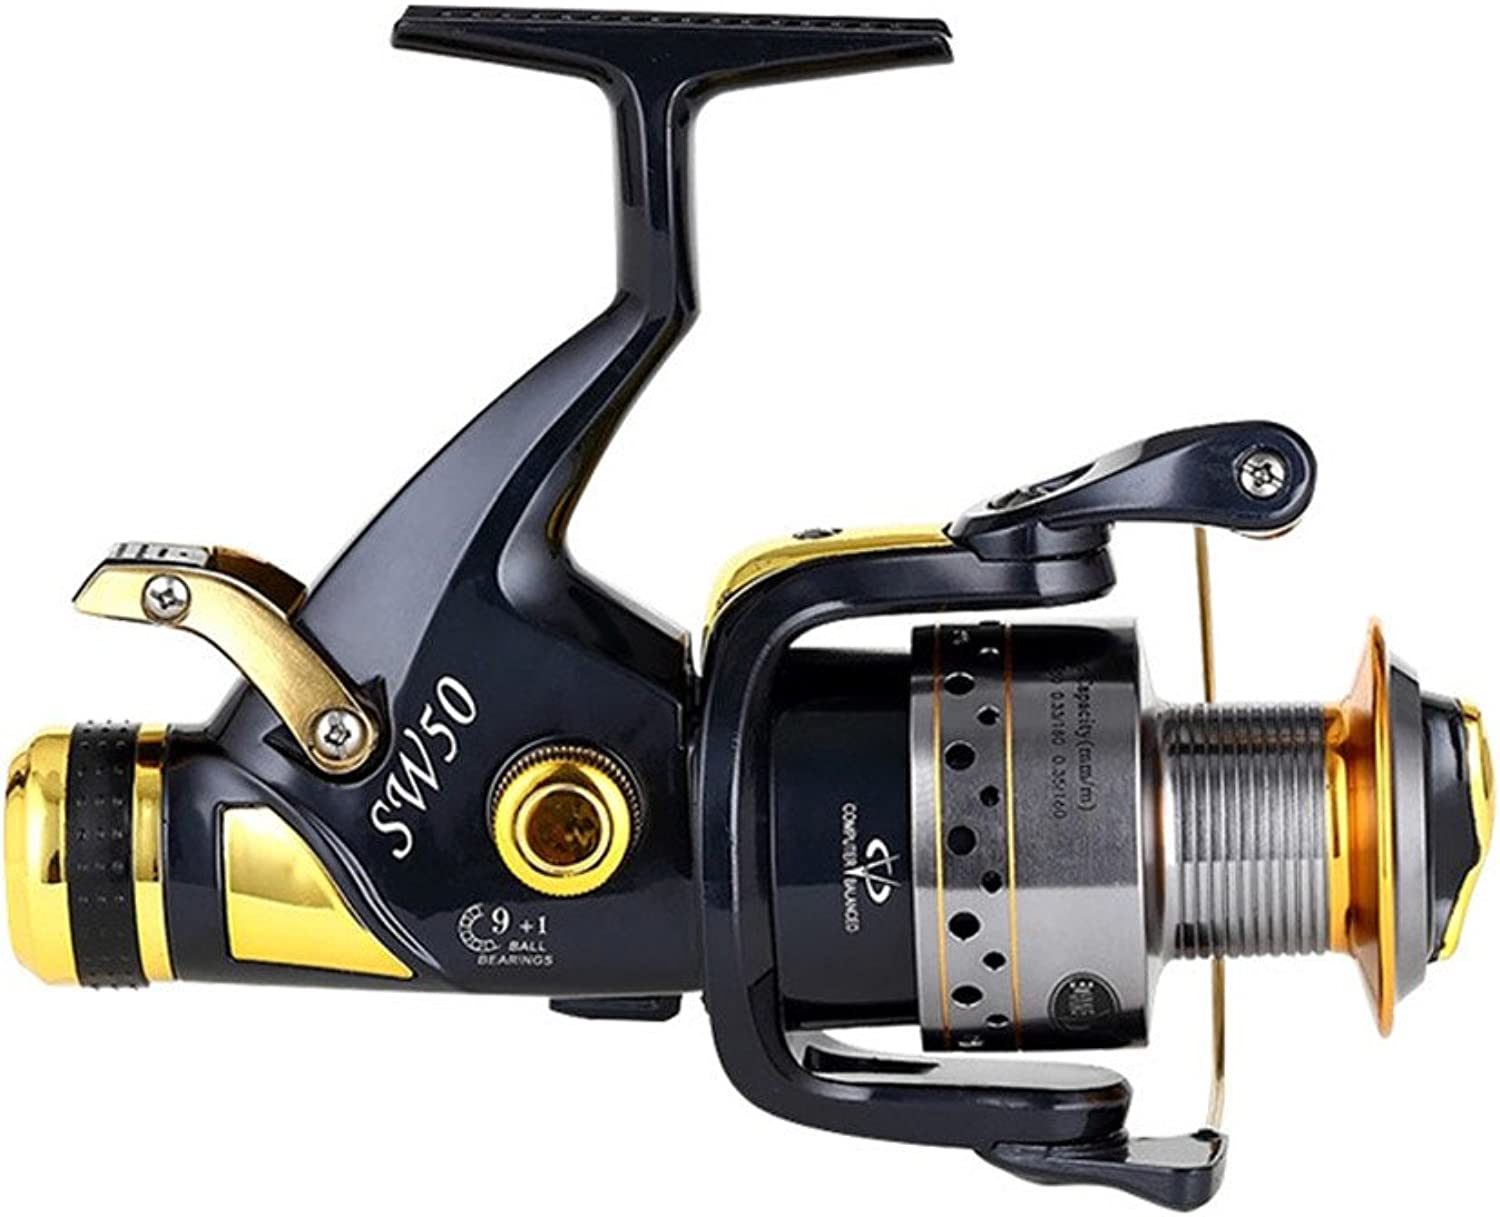 Smooth Spinning Reel Fishing Reel Hand Wheel Spinning Fishing Reel 10+1 Bearings Left Right Interchangeable Handle for Saltwater Freshwater Fishing with Double Drag Brake System Fishing Gear Fishing T